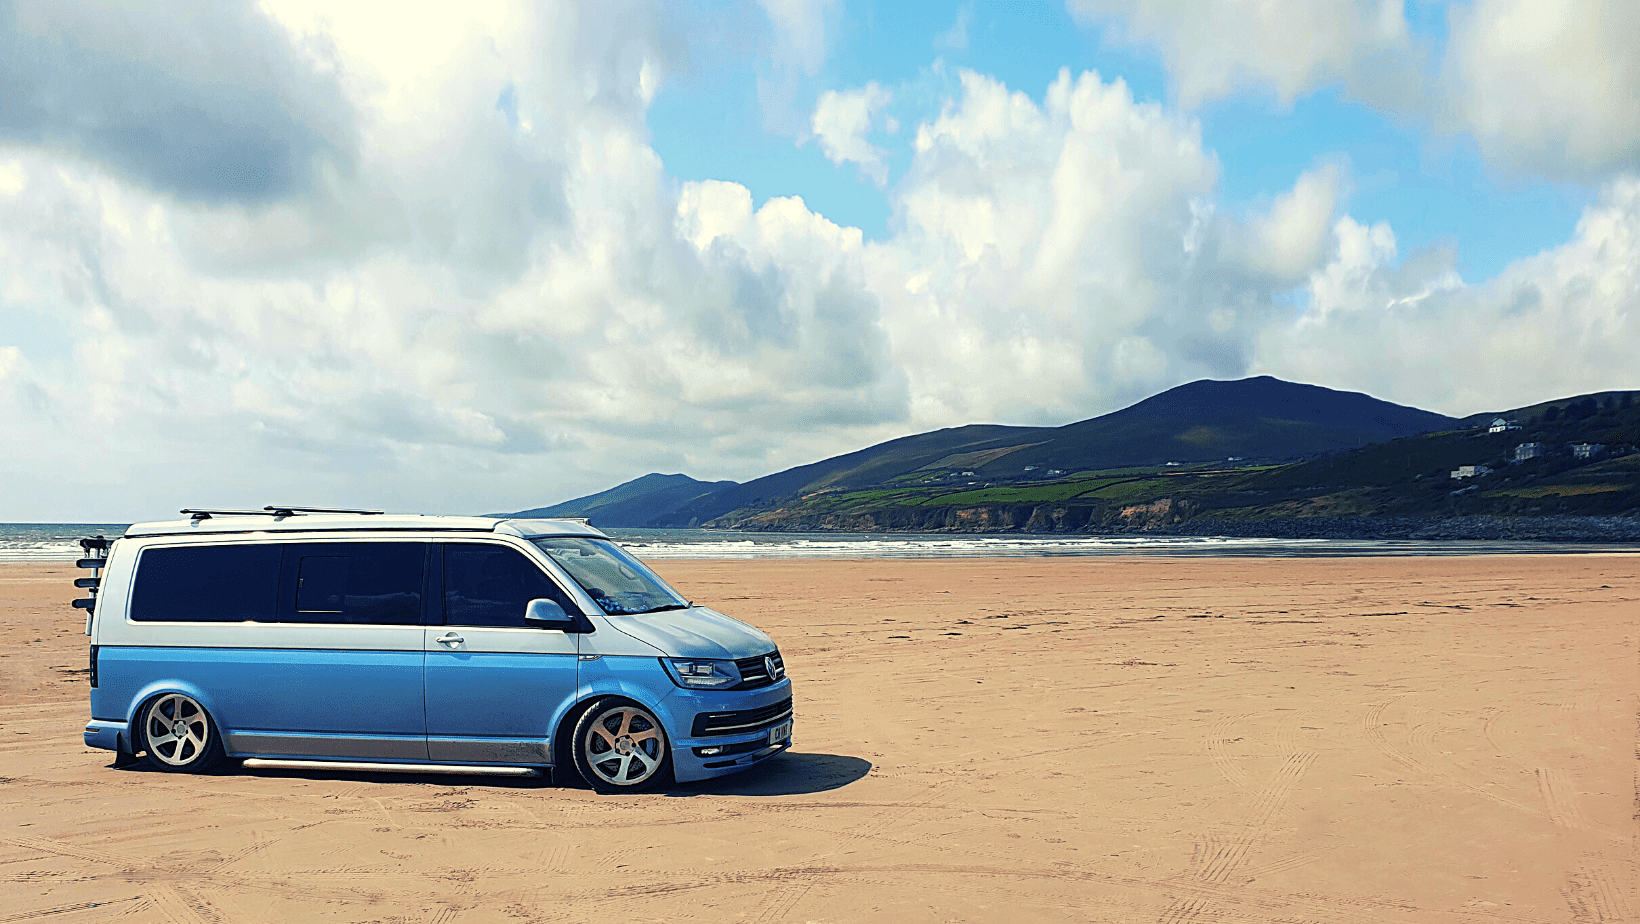 VW Transporter Campervan on the beach Summer Holidays